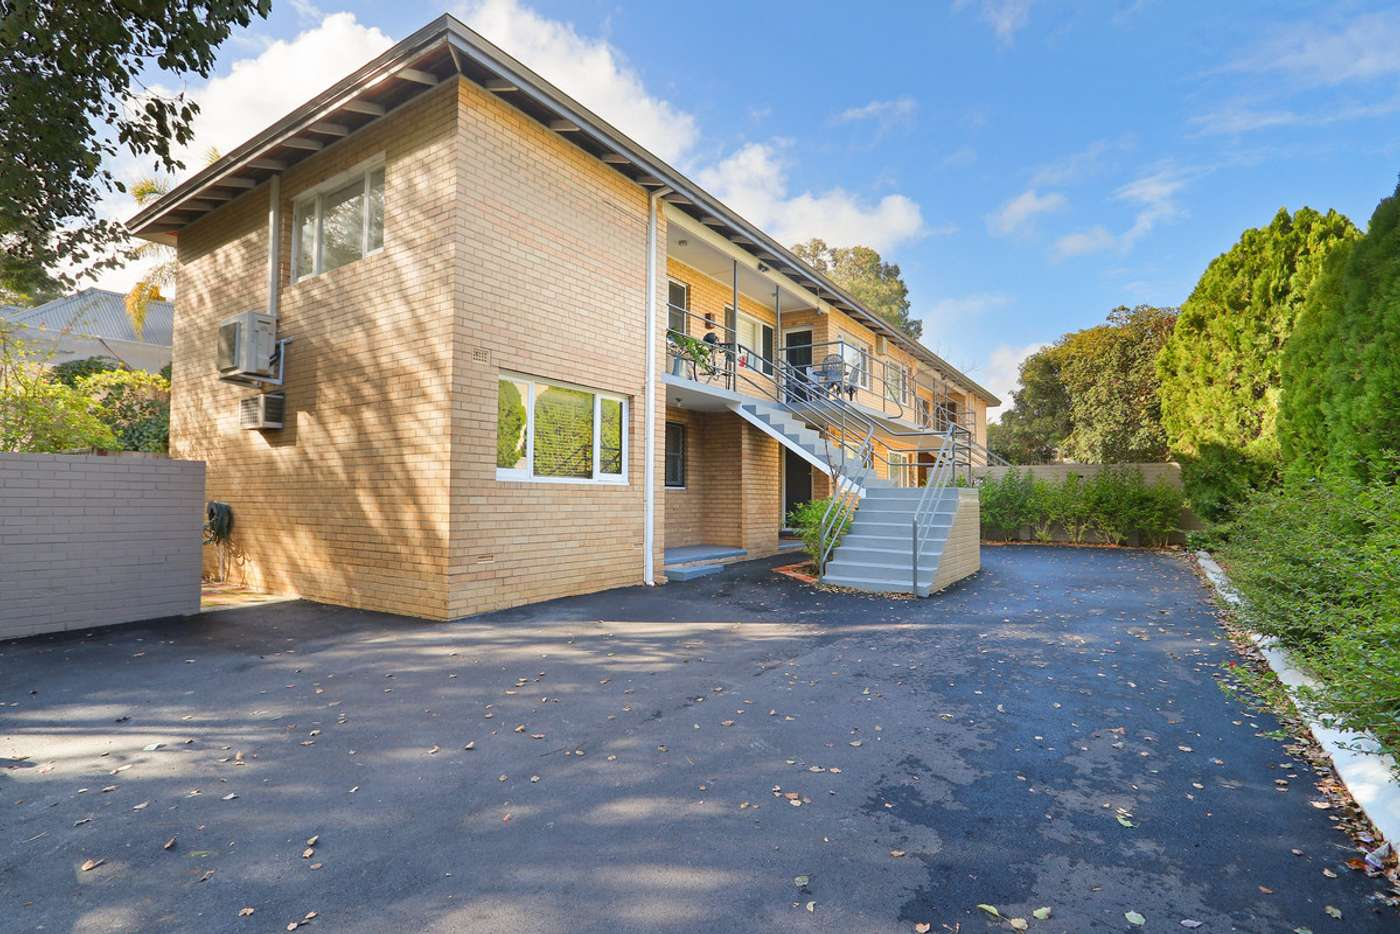 Main view of Homely apartment listing, 8/10 Rupert Street, Subiaco WA 6008